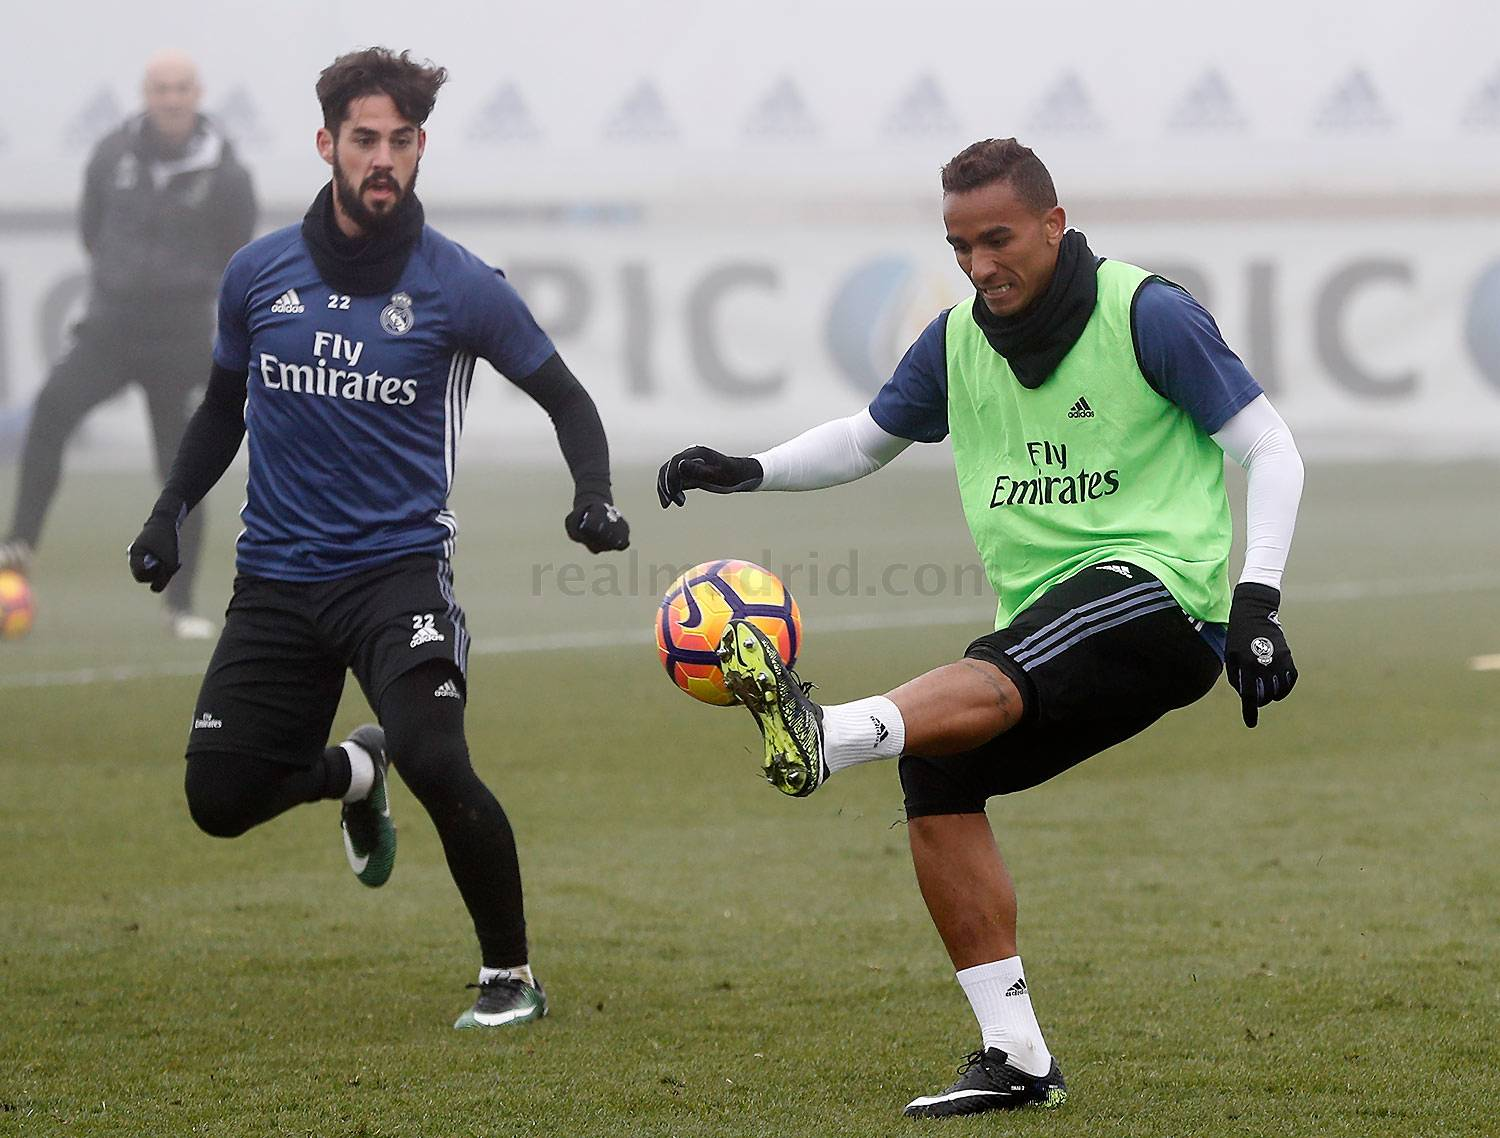 Real Madrid - Entrenamiento del Real Madrid - 05-01-2017